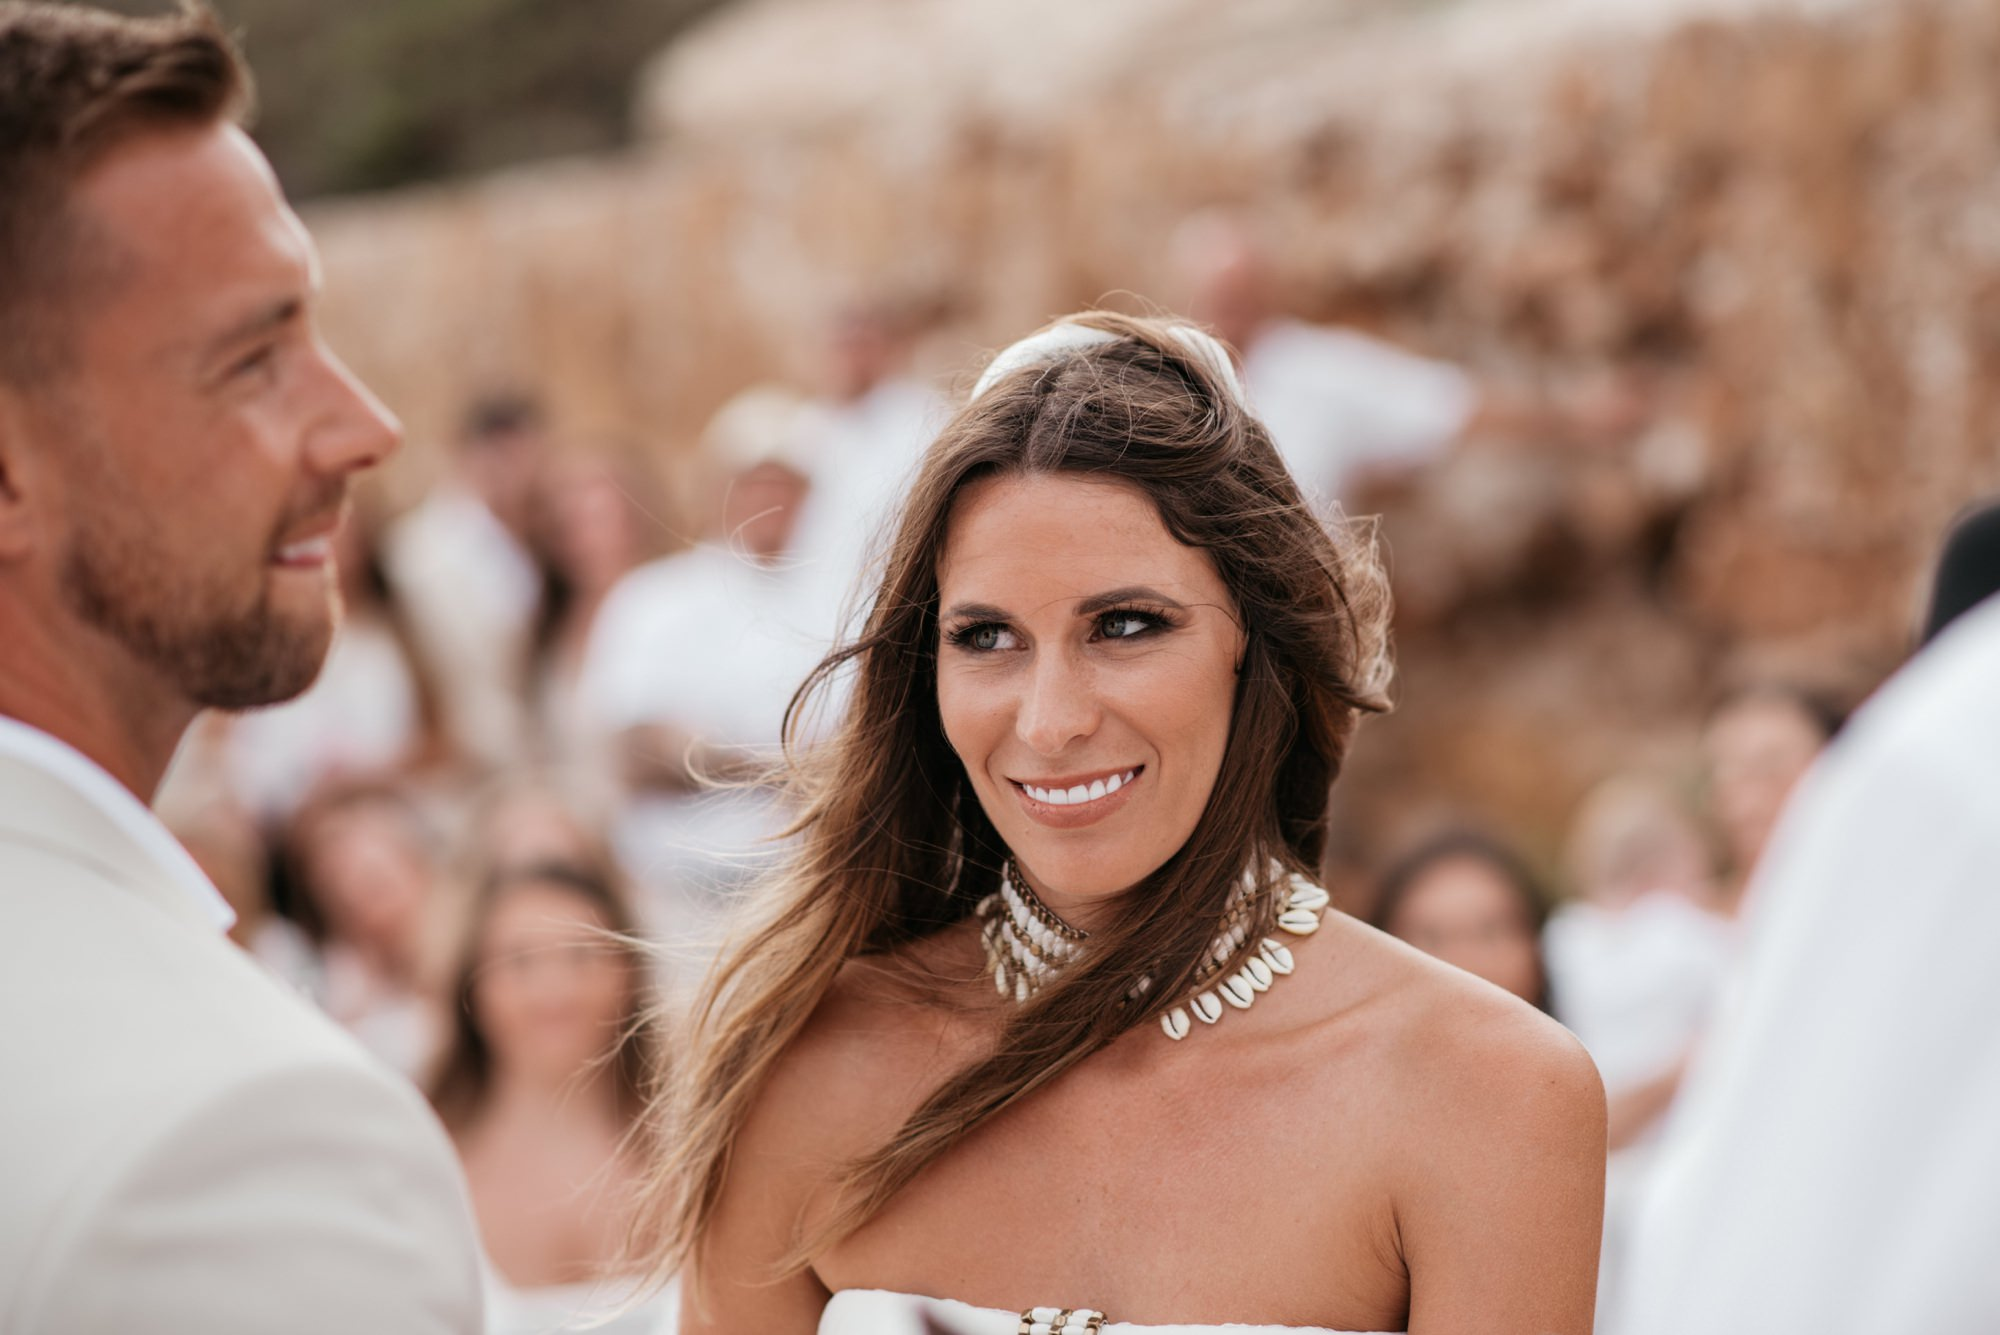 natural wedding photo destination la escollera ibiza 0066 1